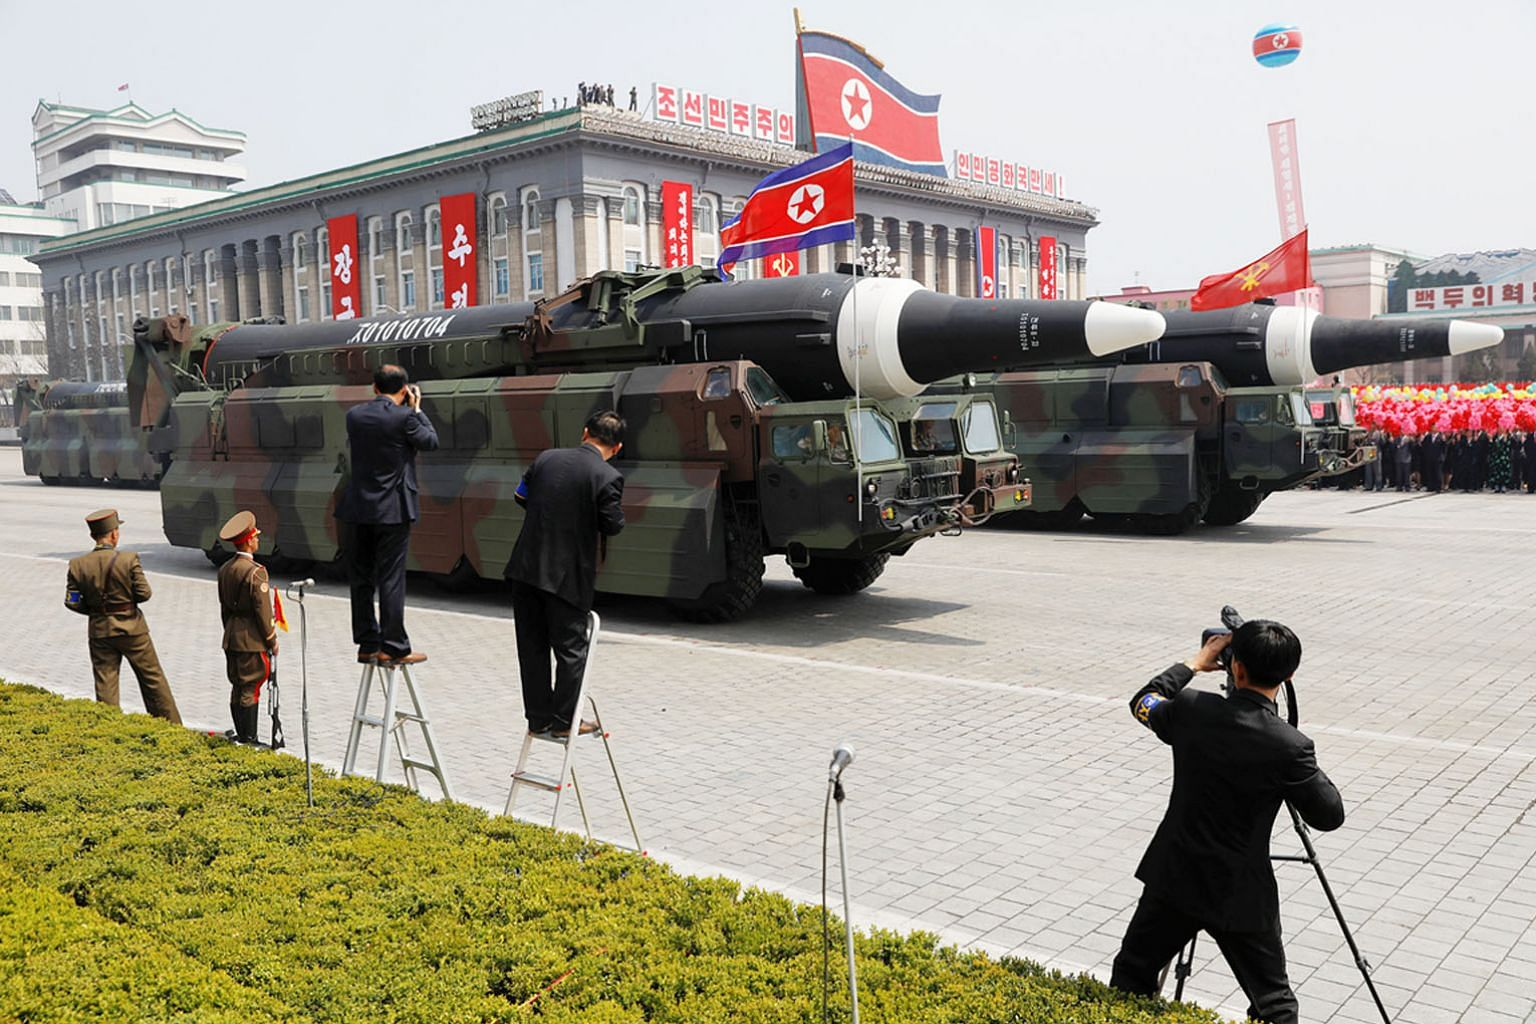 Missiles on show during a military parade in North Korea. The regime's race to build a warhead that could reach the US has recently brought the modern arms race into focus.